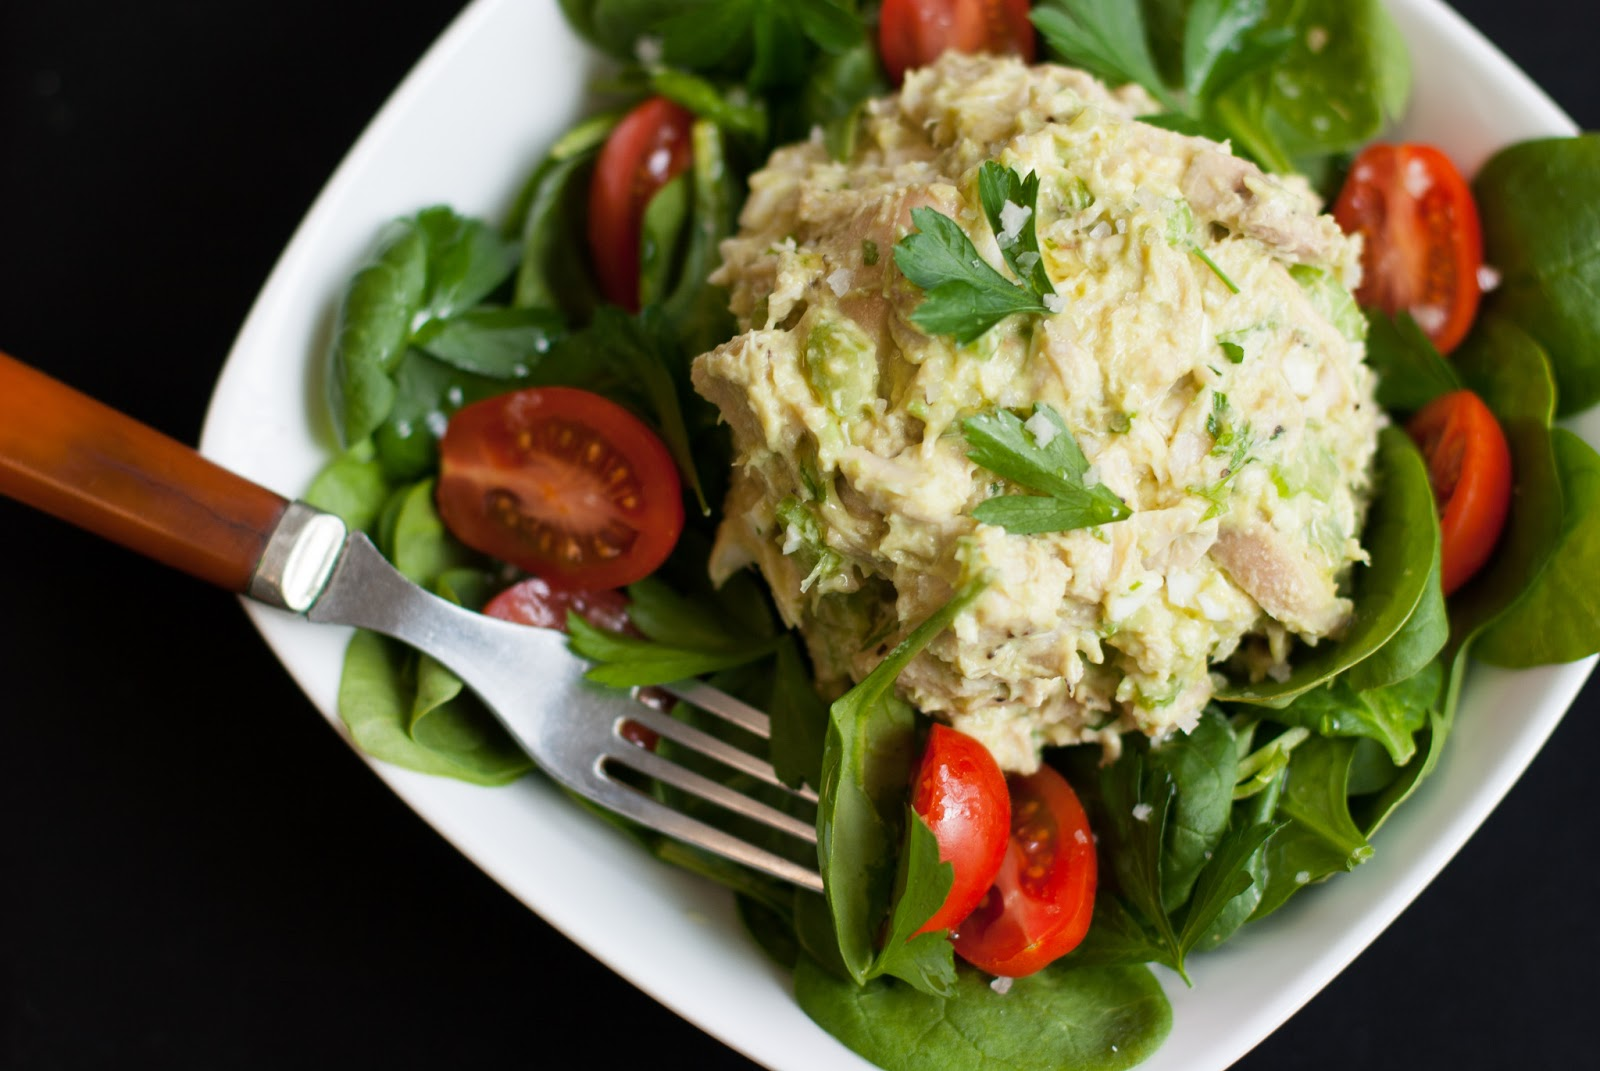 Grubarazzi: Avocado Chicken Salad